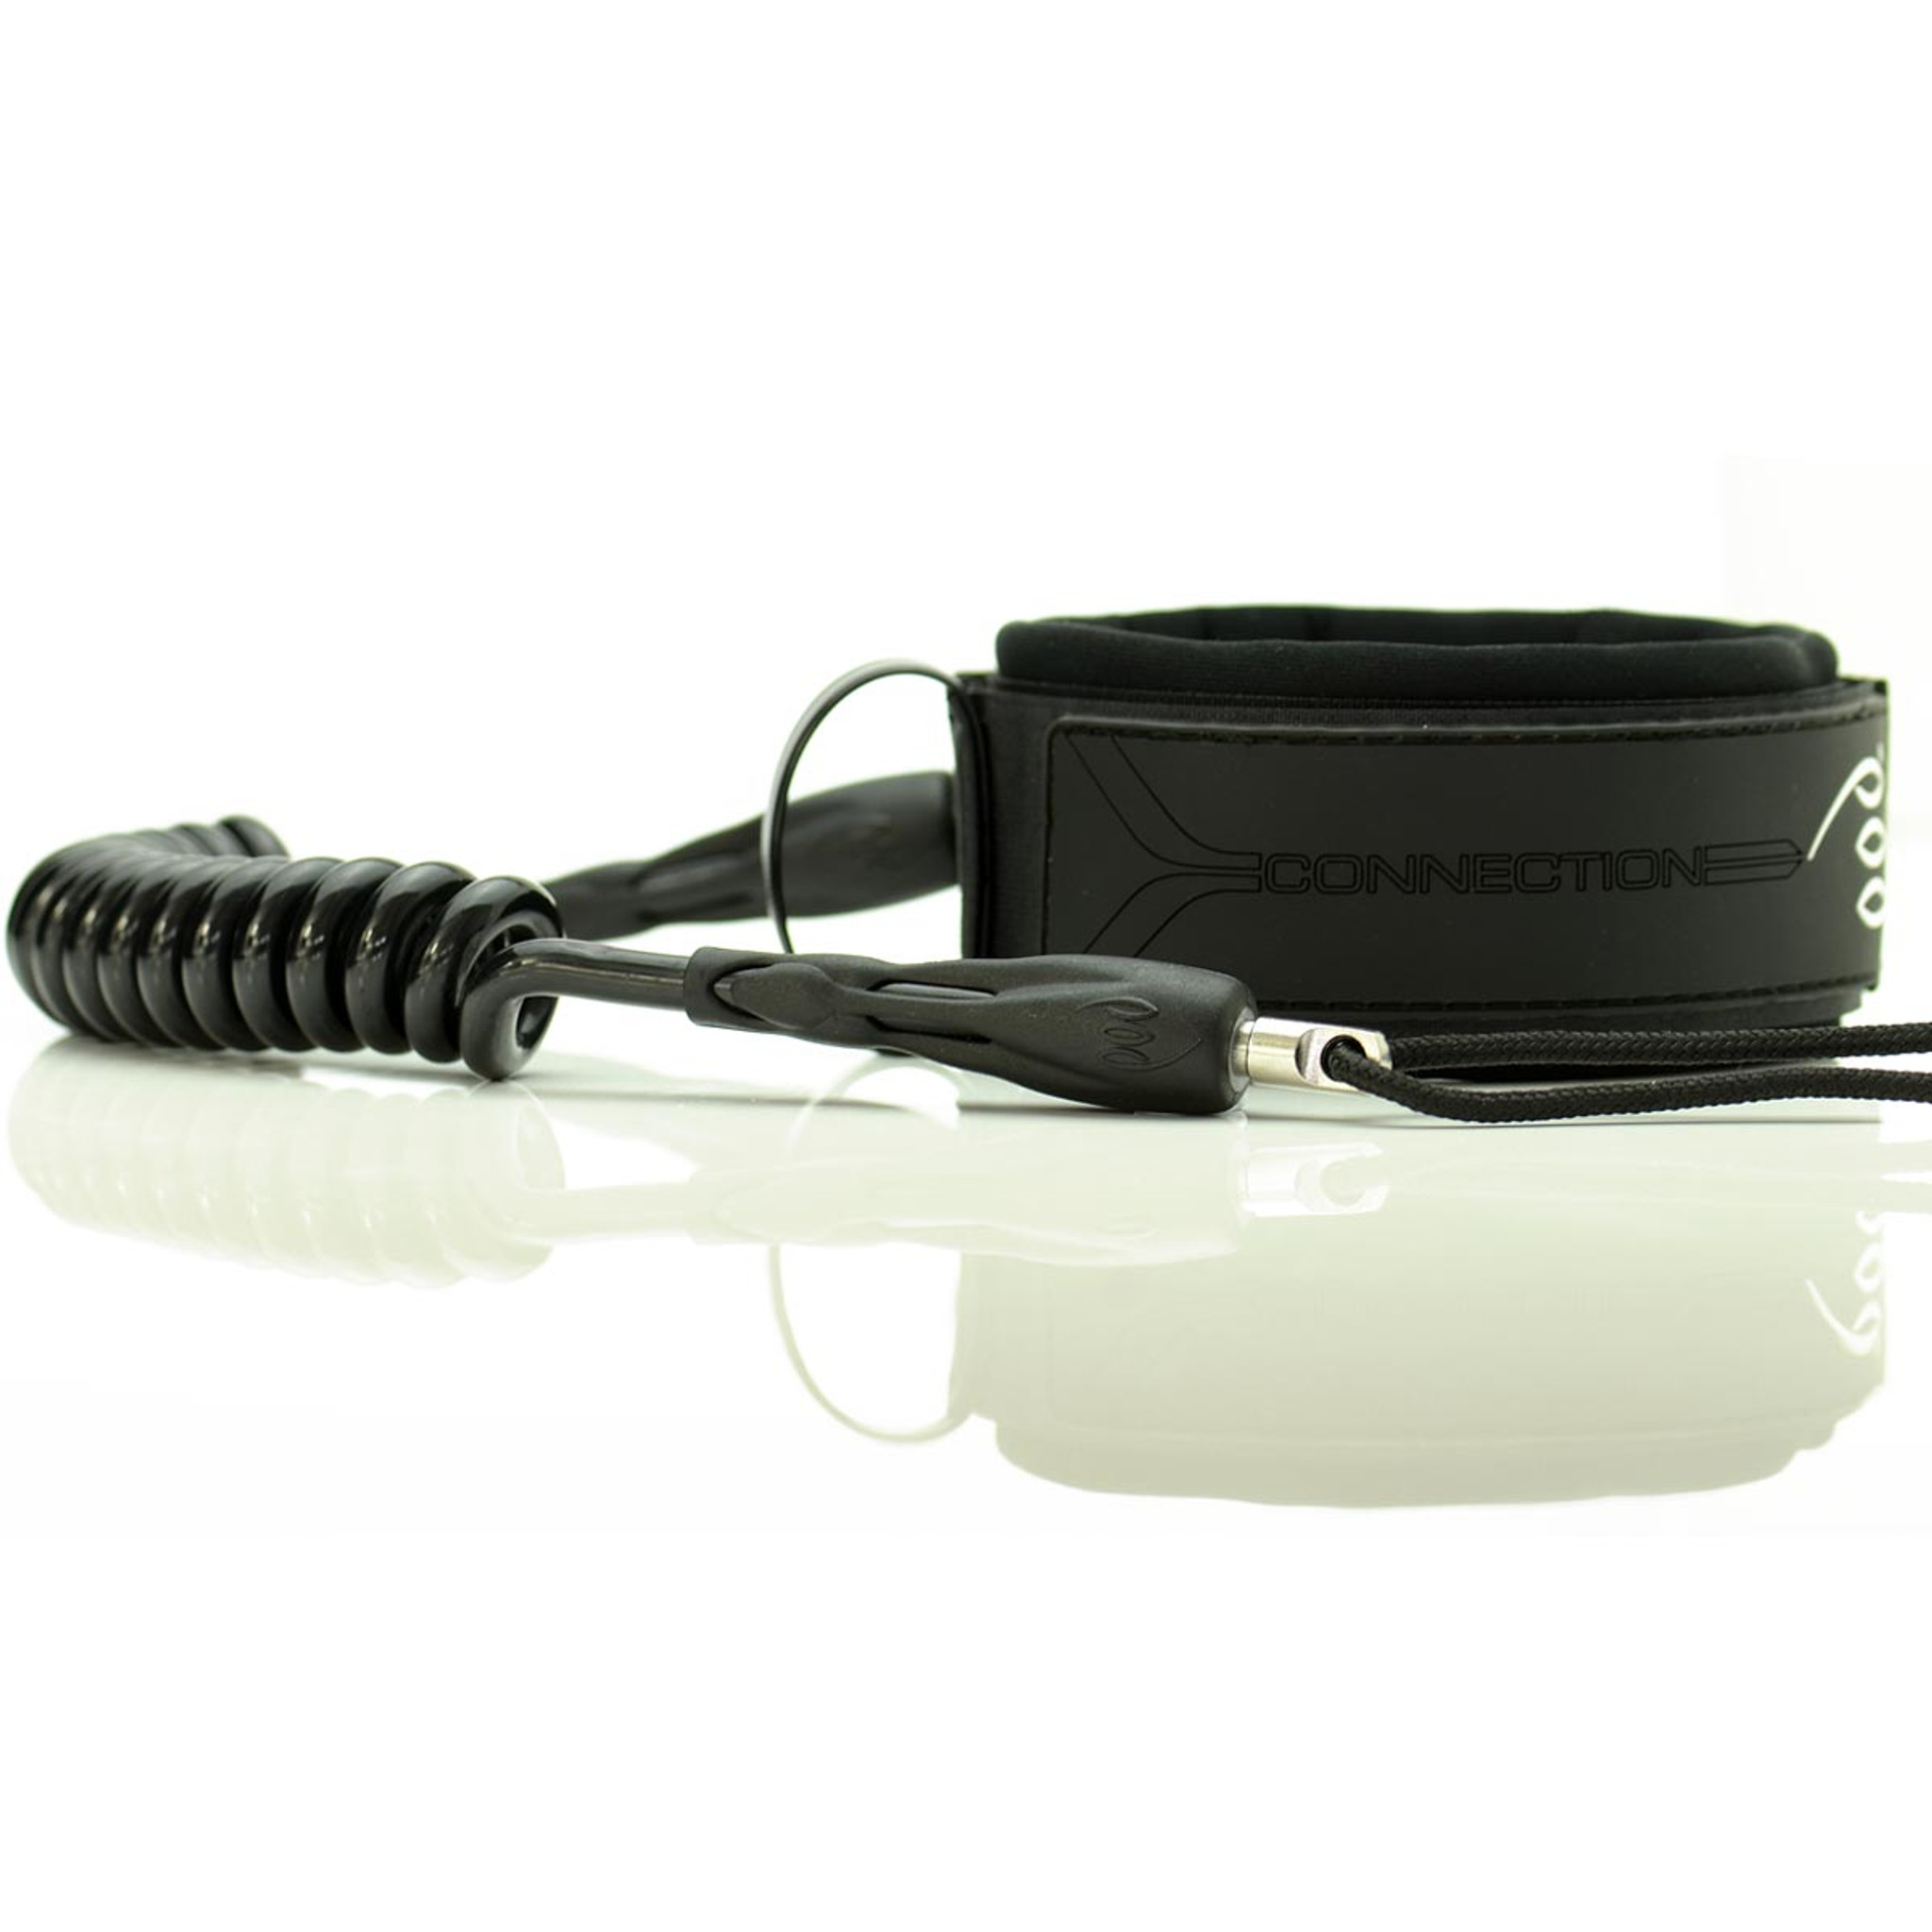 Extra Large Bicep Leashes - Stealth Black Badge Solid Black Cord